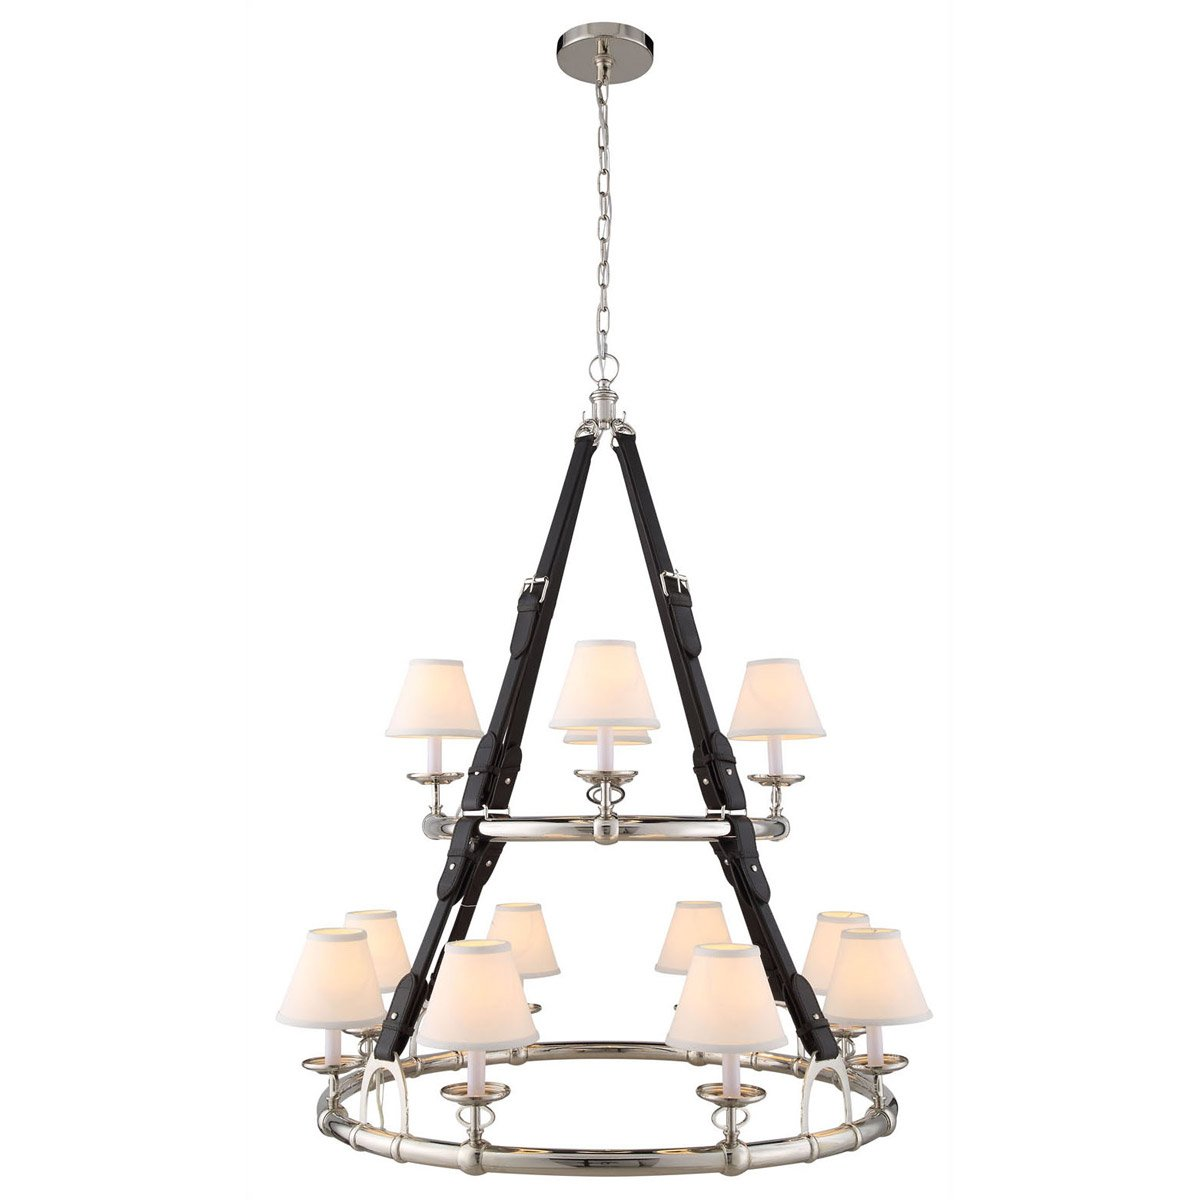 Cascade 37 Pendant With 12 Lights - Polished Nickel Finish Pendant